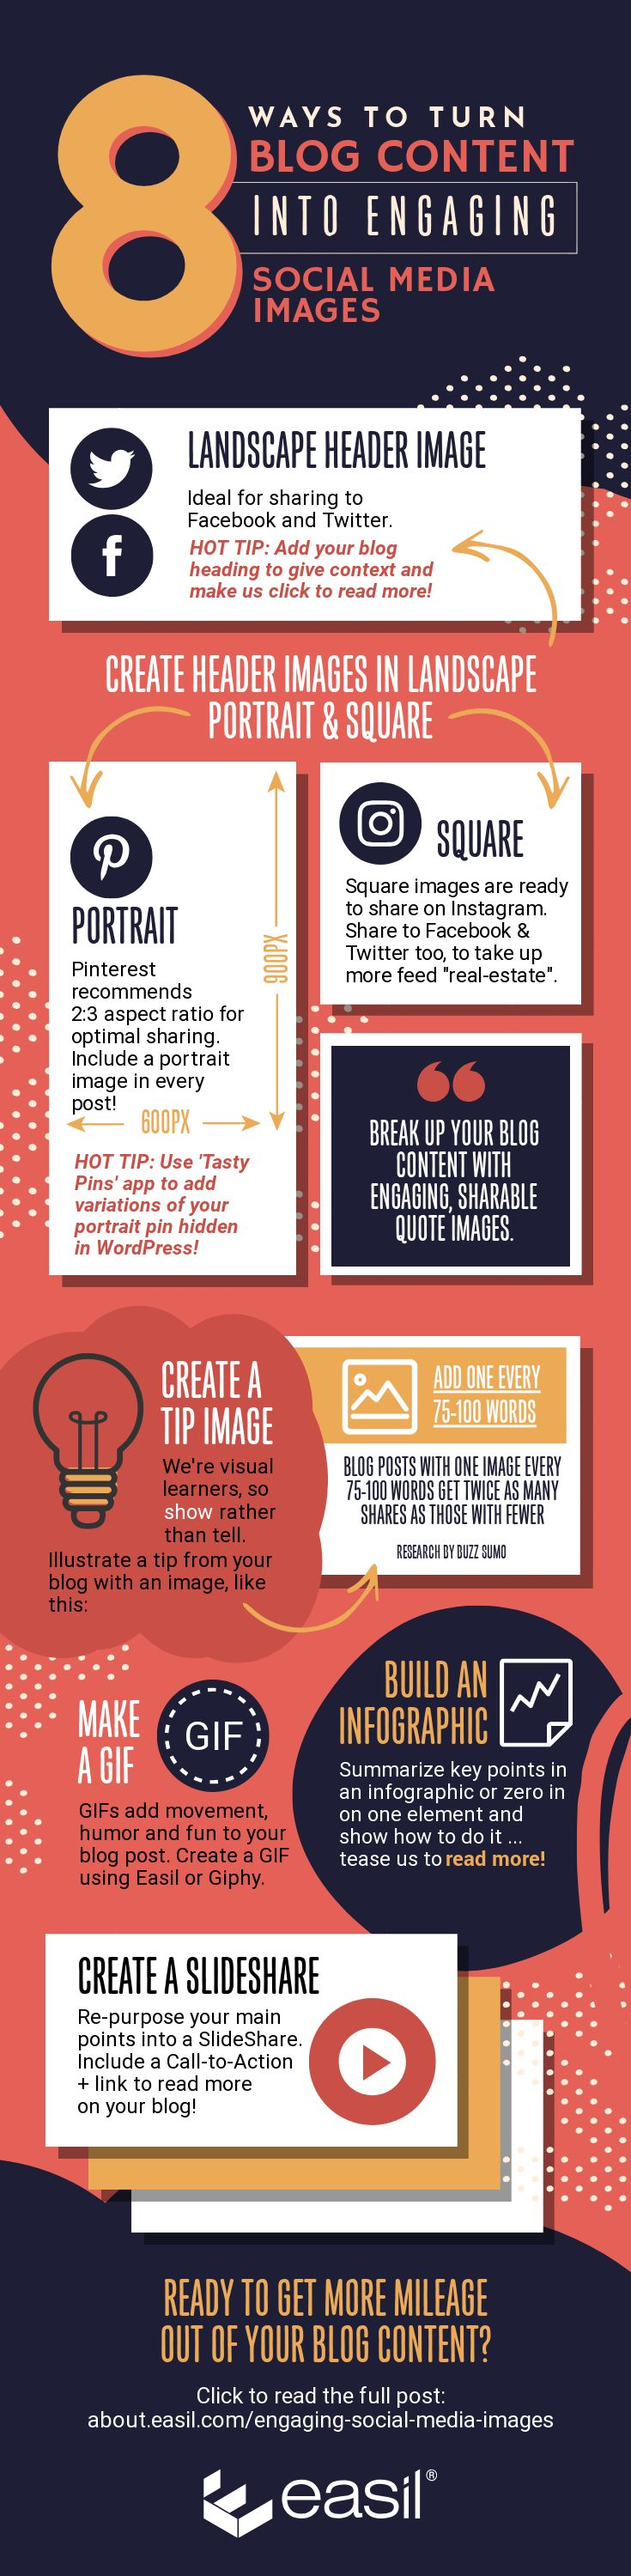 Infographic - 8 Ways to Turn Blog Content into Engaging Social Media Images